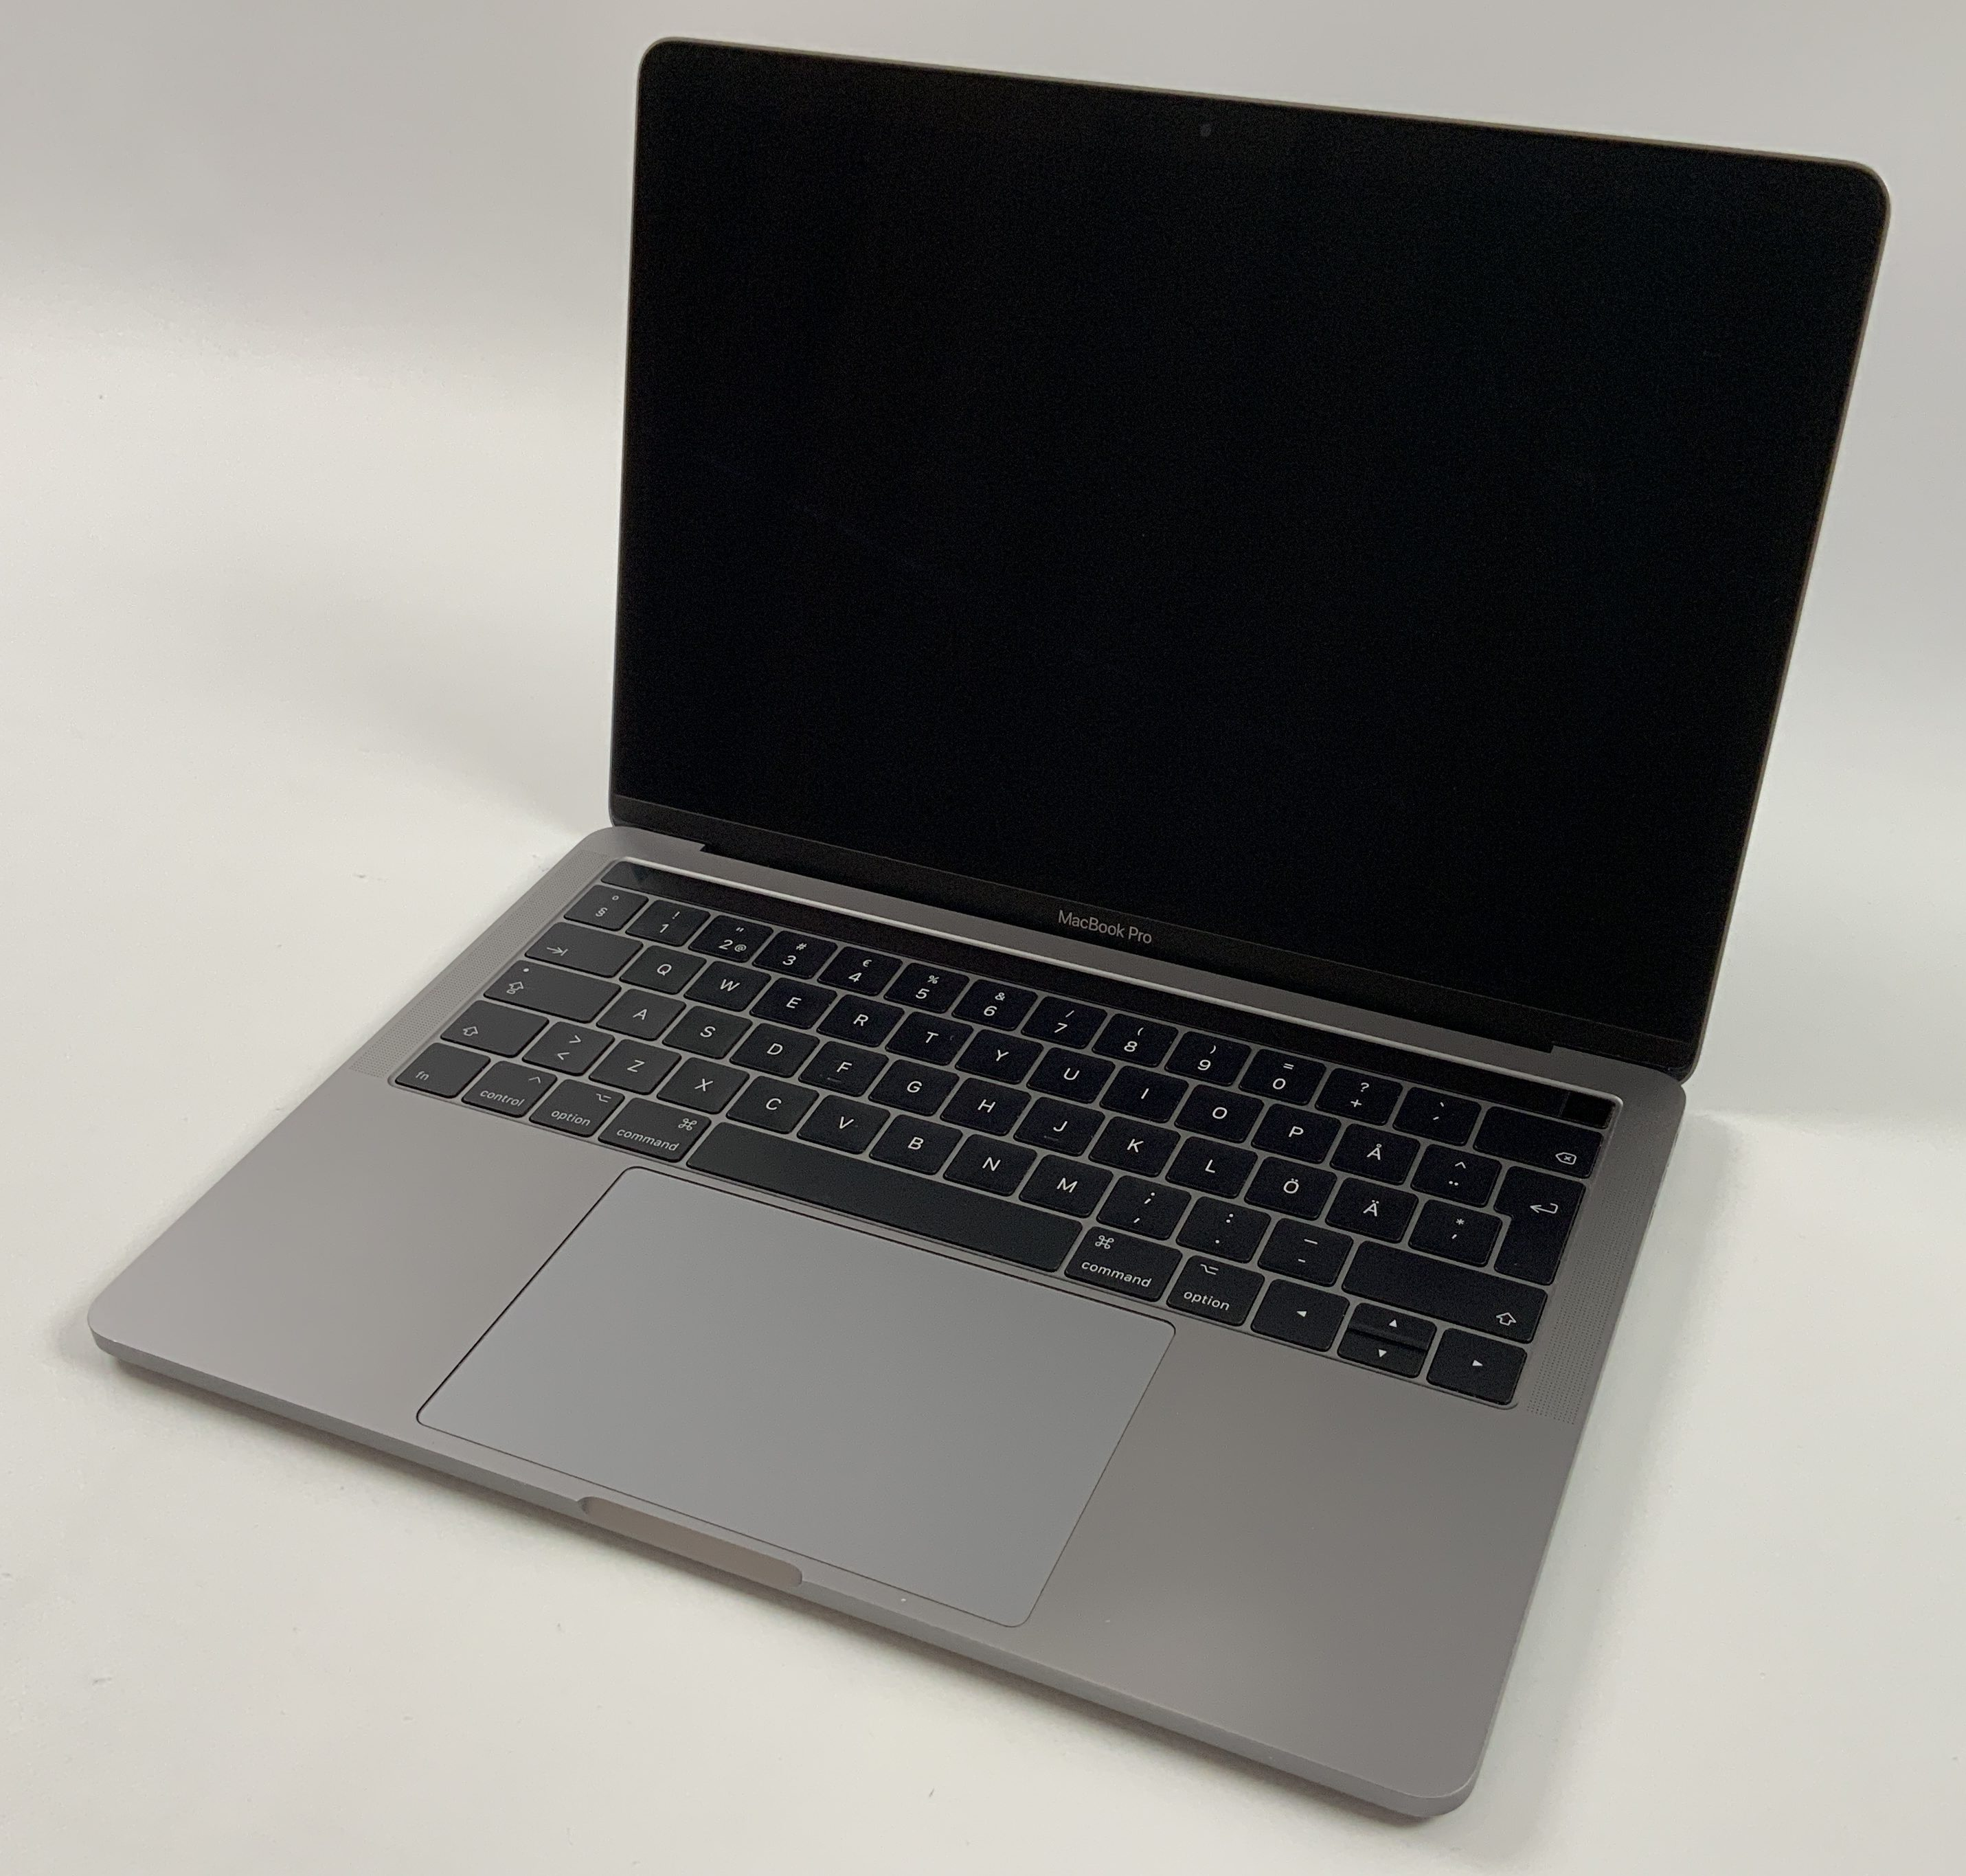 "MacBook Pro 13"" 4TBT Mid 2017 (Intel Core i5 3.1 GHz 8 GB RAM 512 GB SSD), Space Gray, Intel Core i5 3.1 GHz, 8 GB RAM, 512 GB SSD, Bild 1"